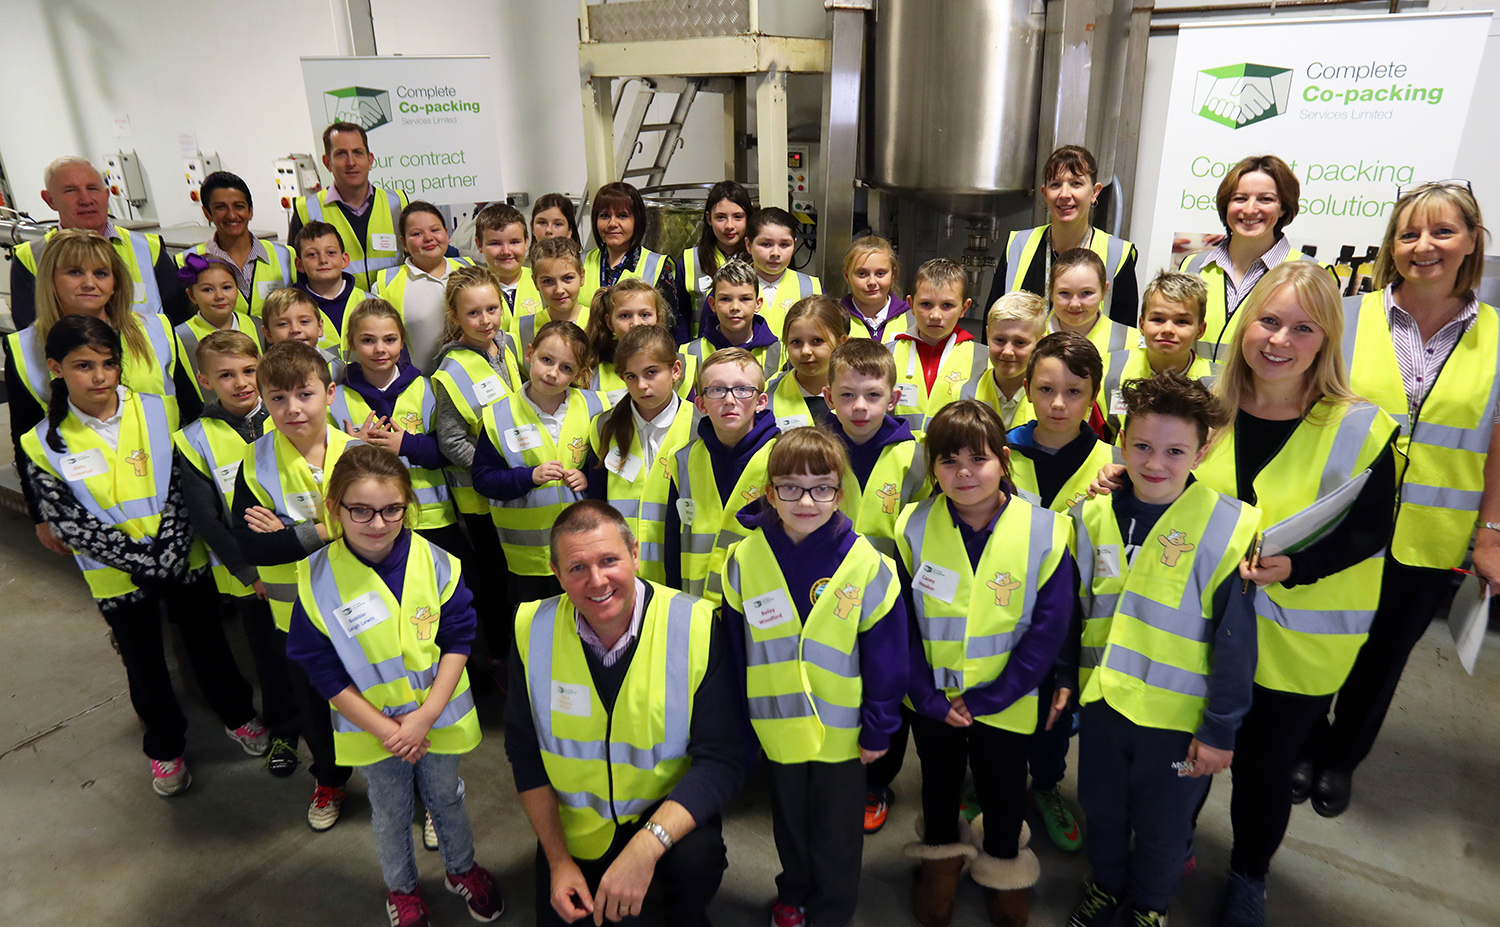 Complete Co-packing School Visit